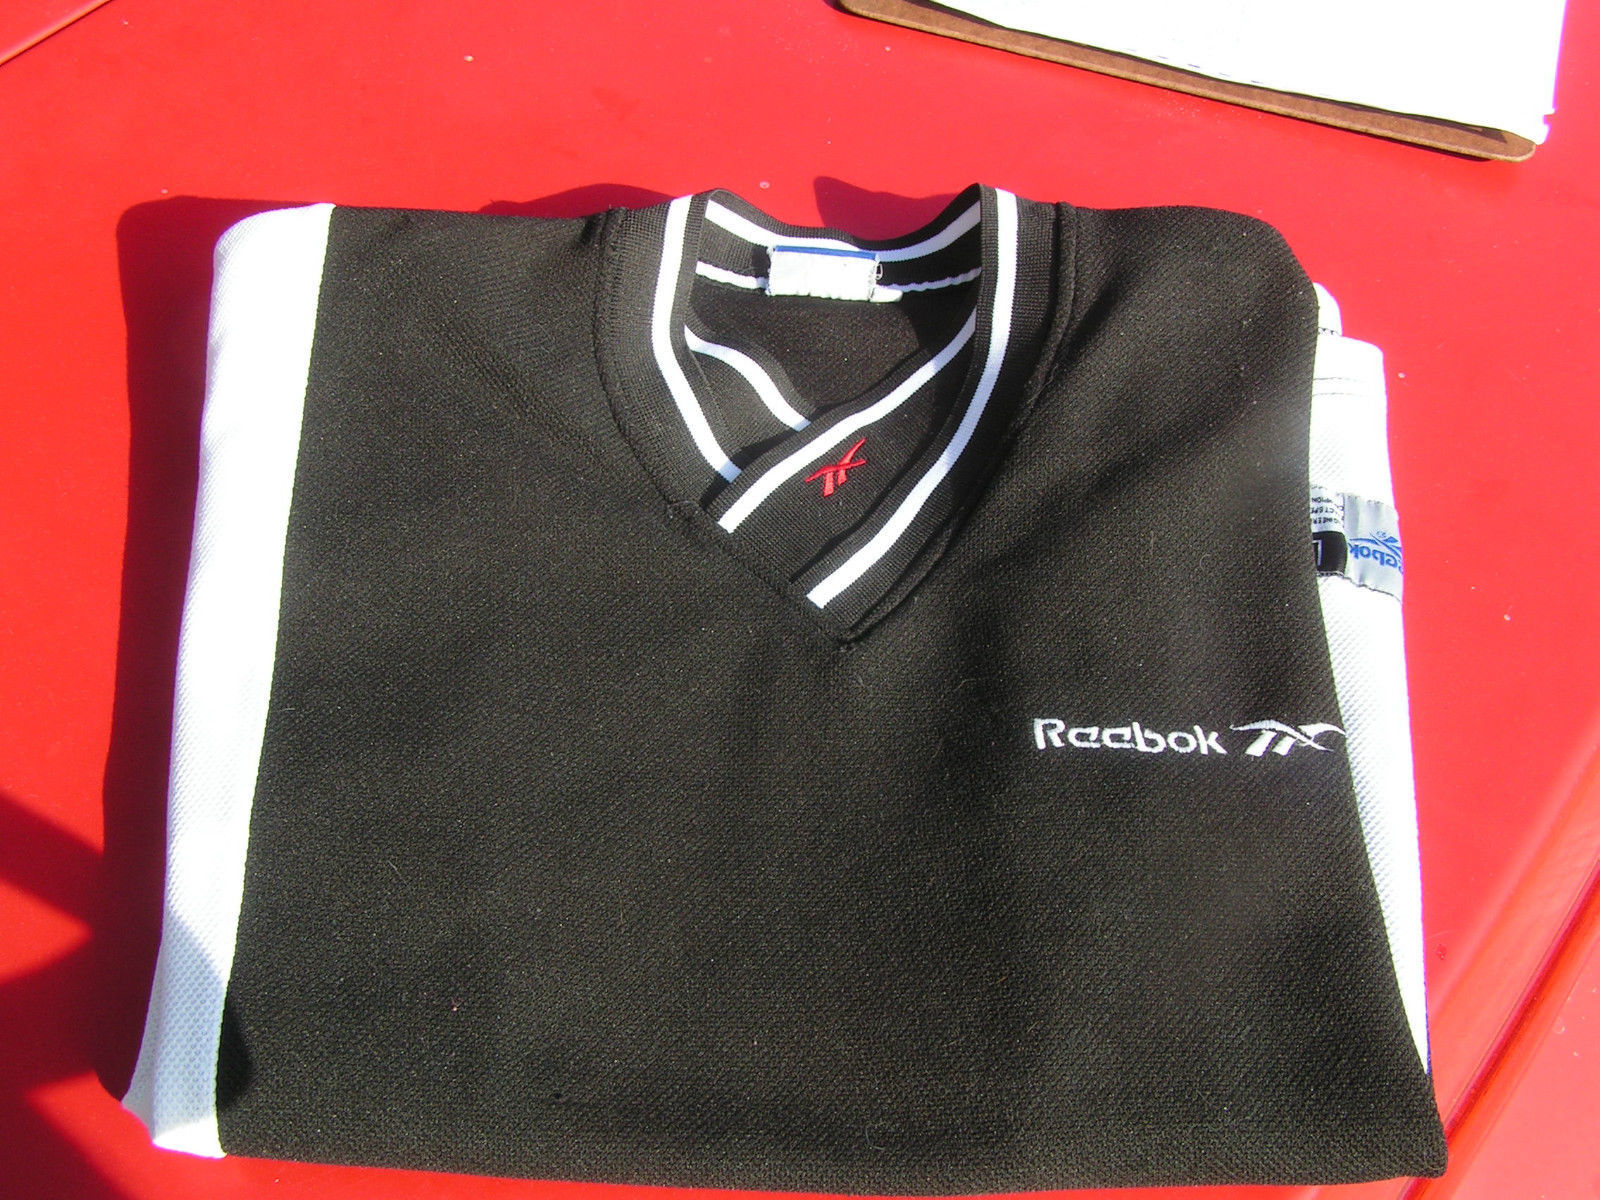 Primary image for Reebok Jersey Men's Large - Really Nice! Made Well!